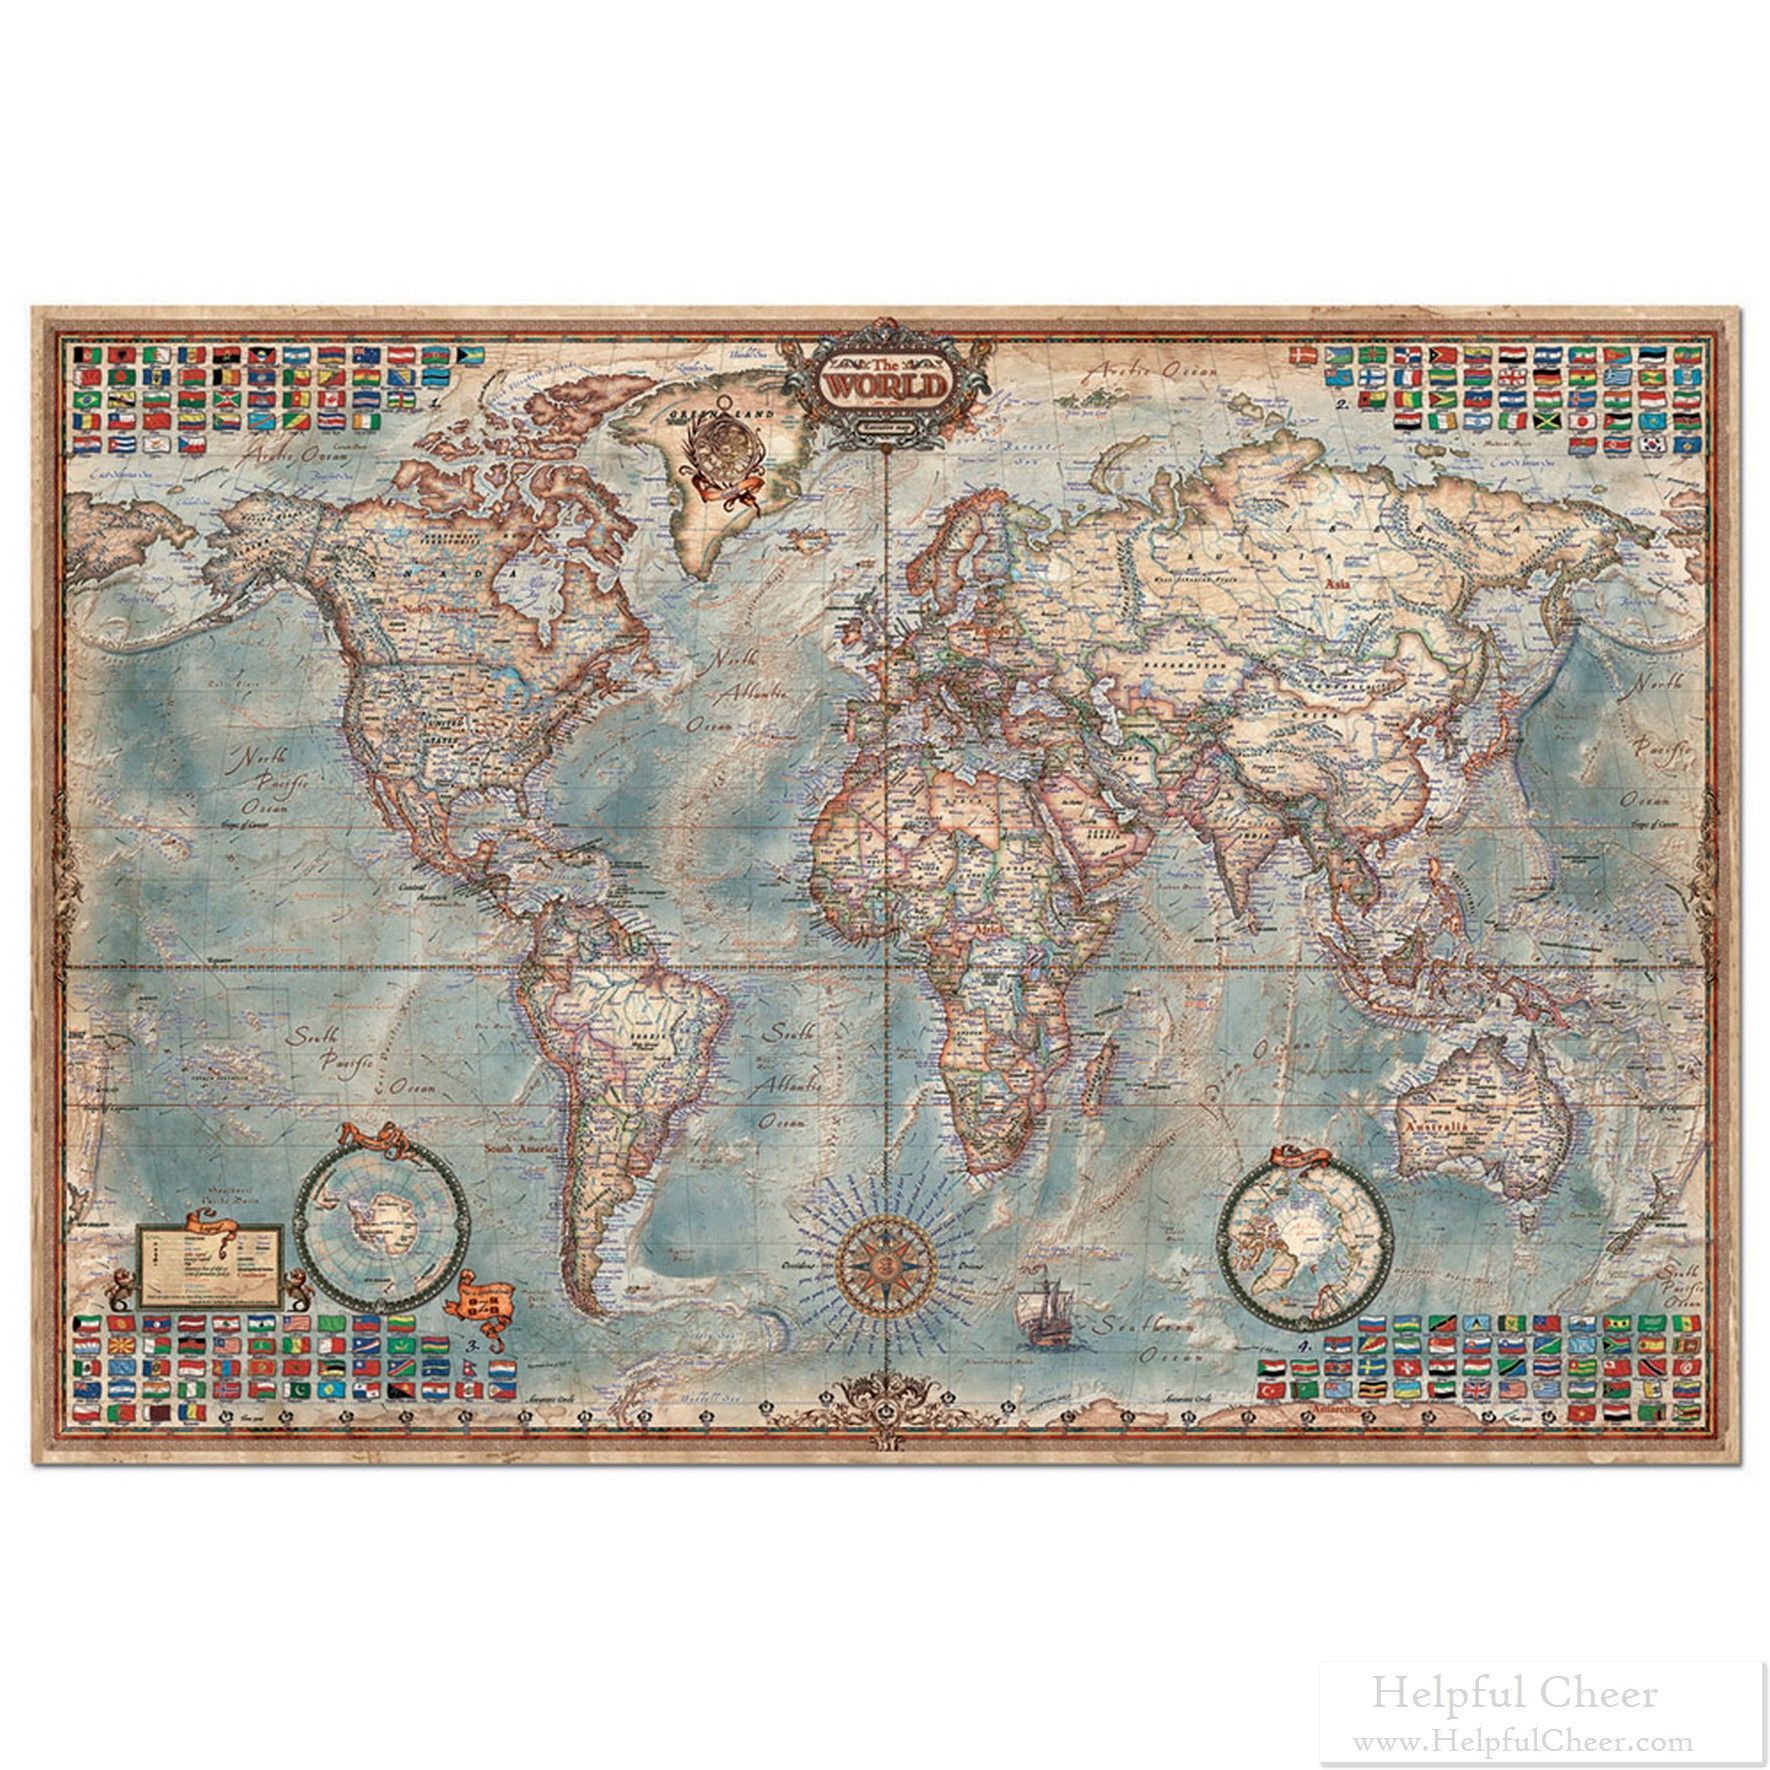 The world map flags 4000 piece puzzle black friday deals are back the world map flags 4000 piece puzzle black friday deals are back thousands of deals thousands gumiabroncs Choice Image